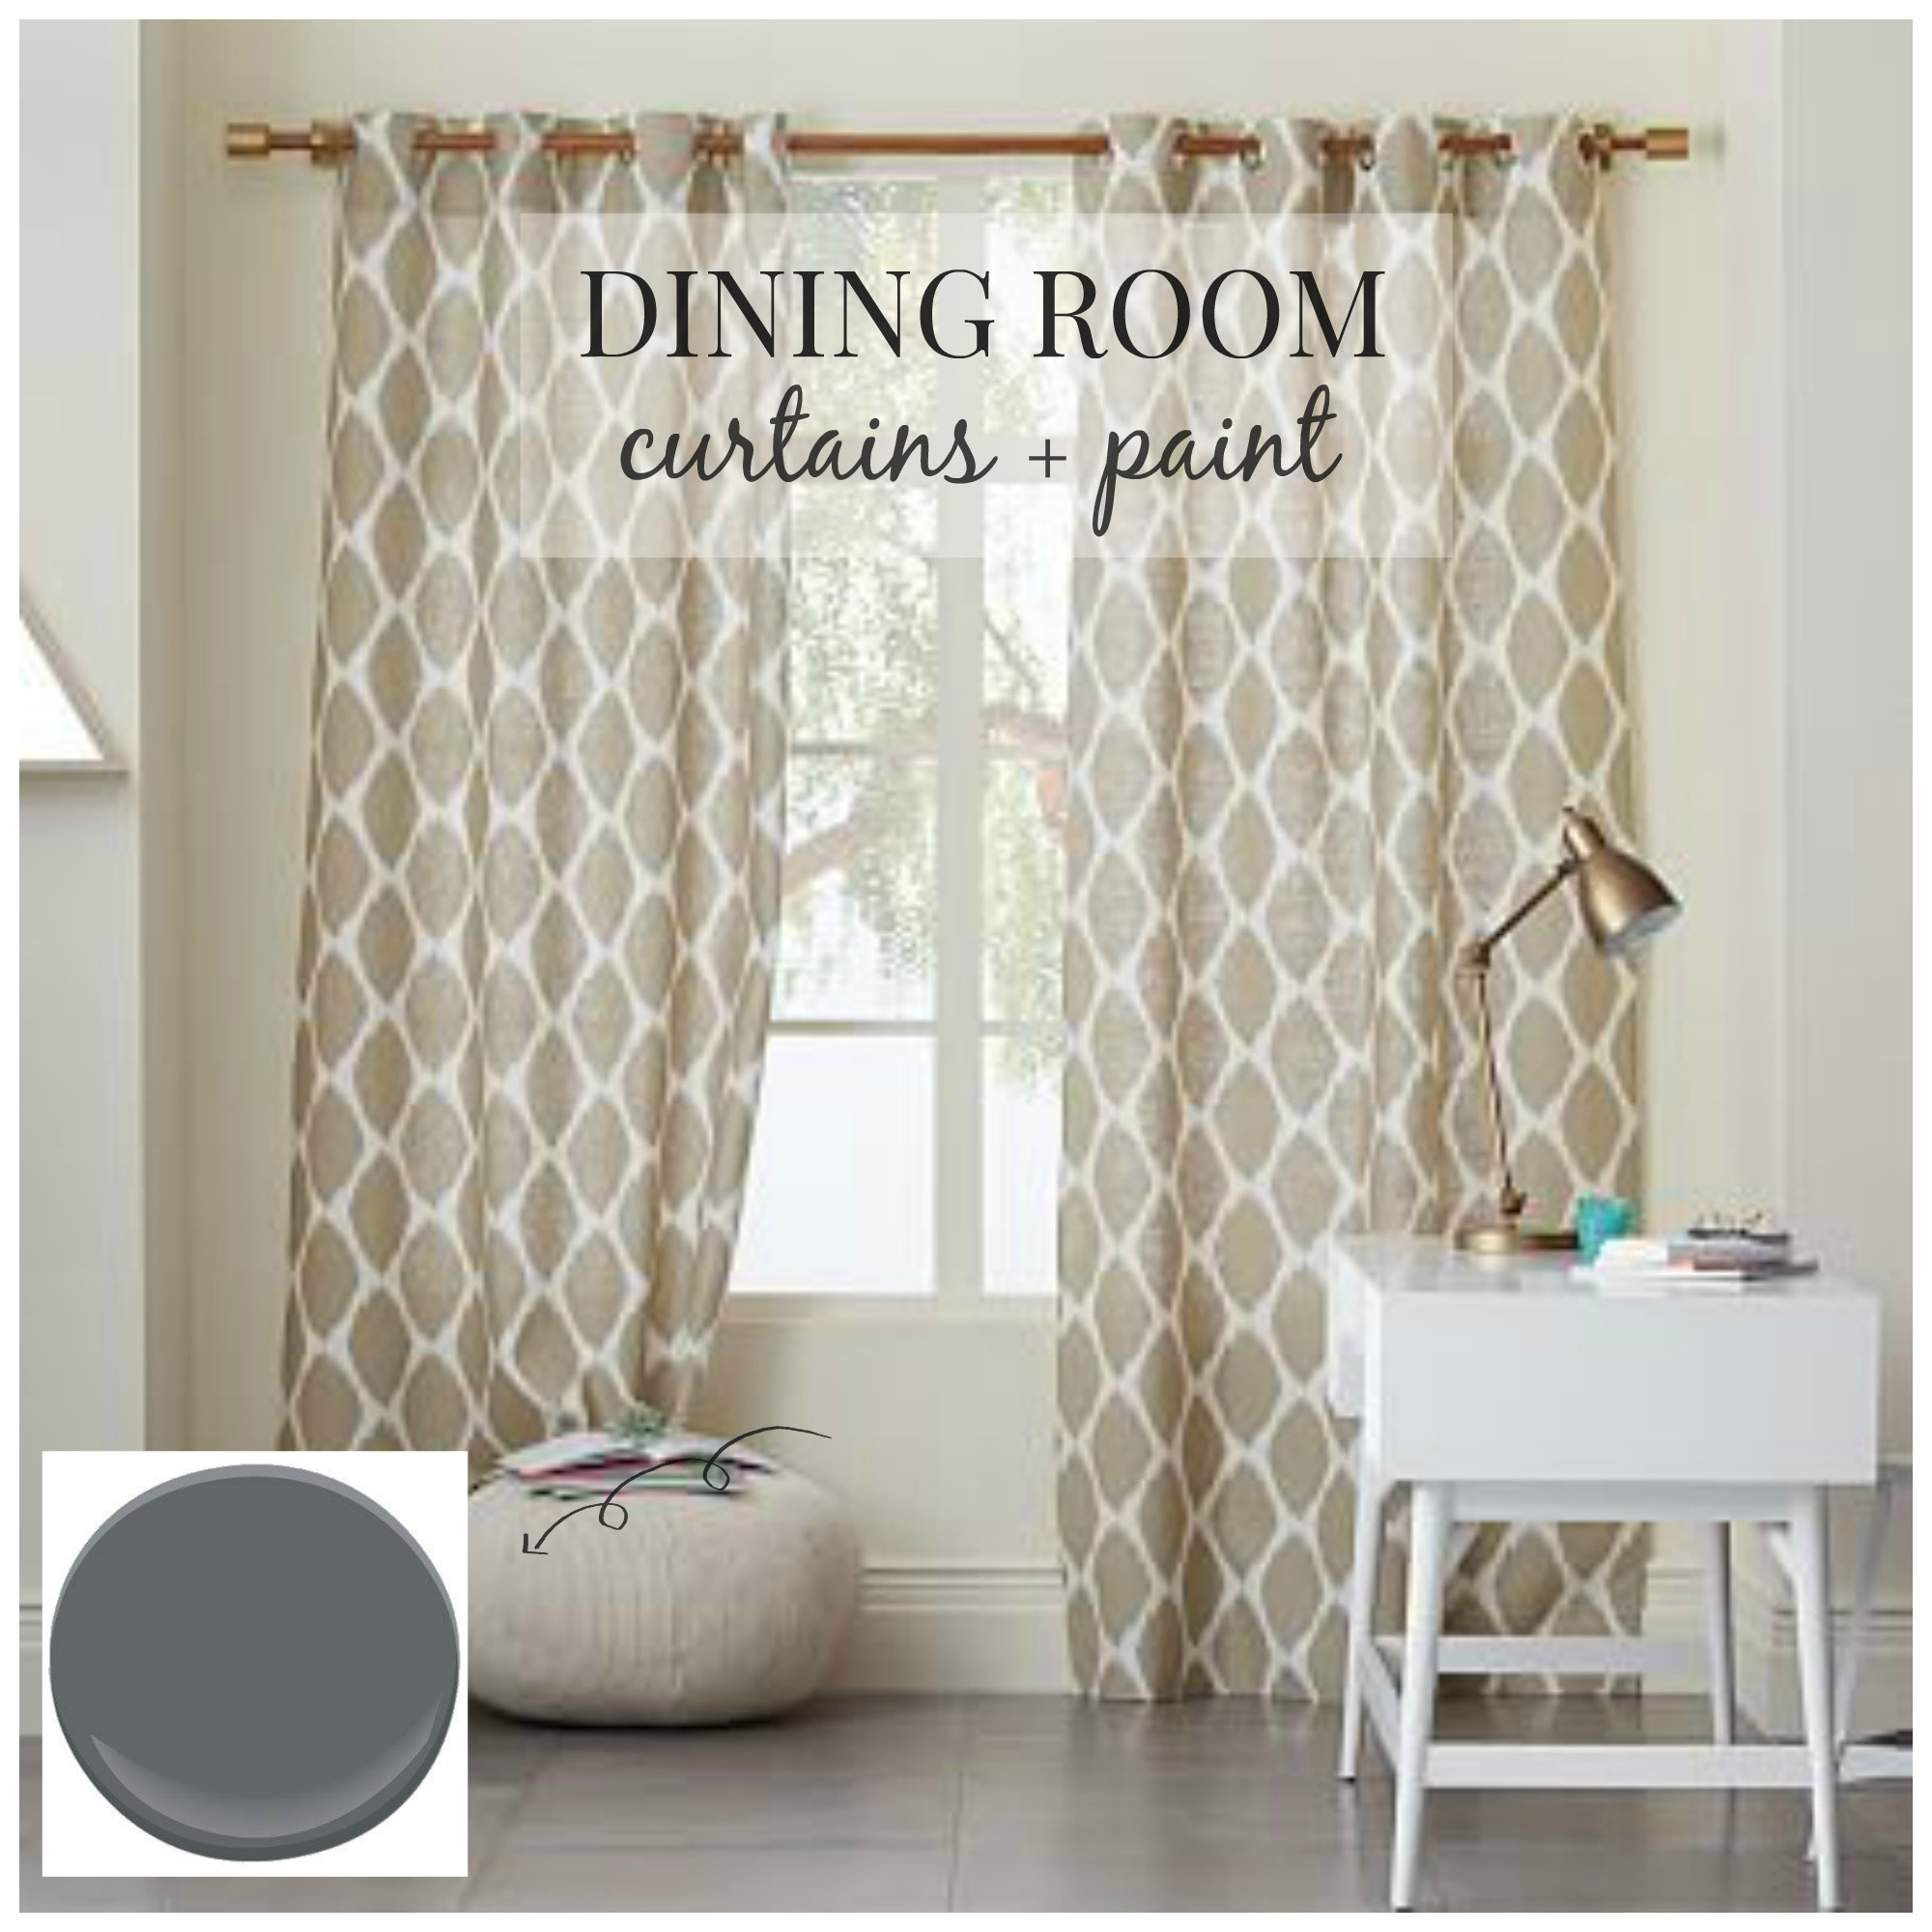 Dining Room Design Curtains Paint